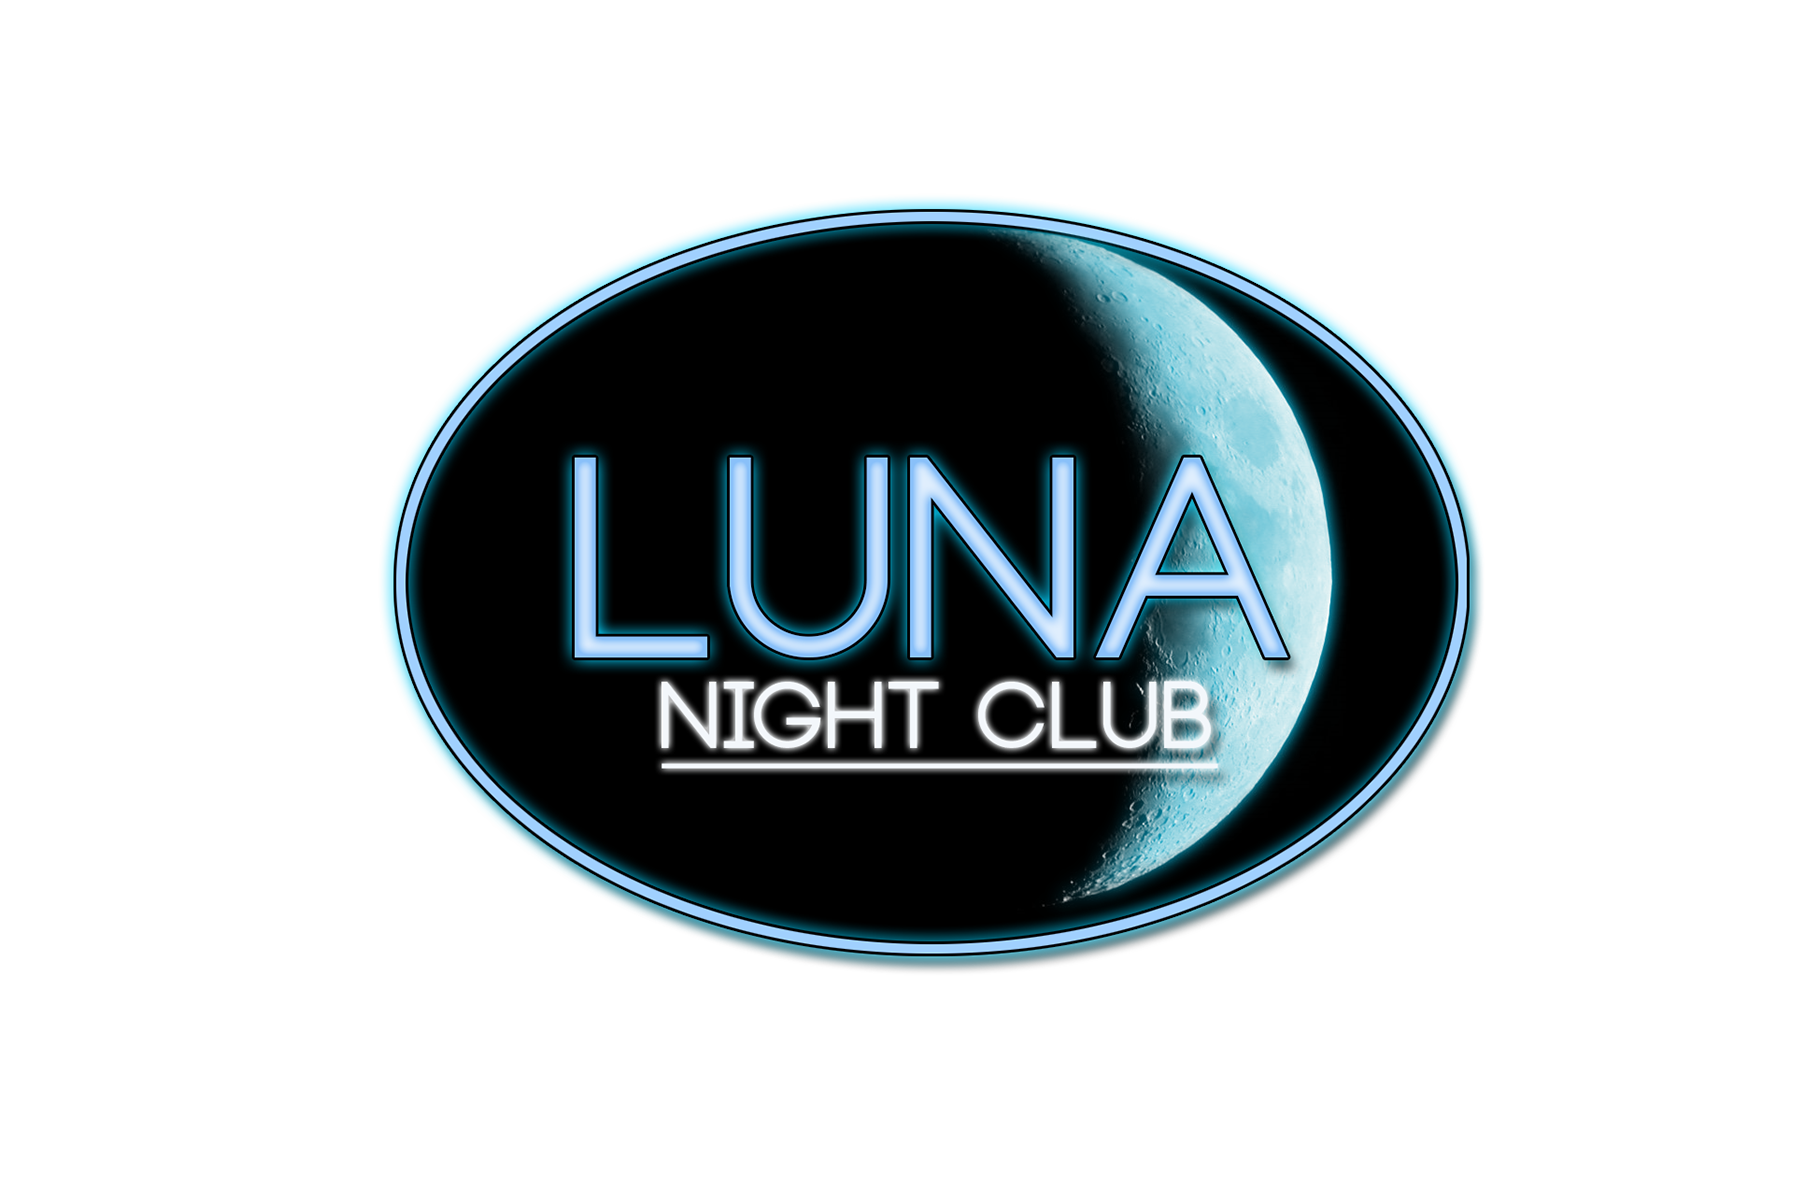 Club Luna continues to live up to their billing one of the Best NightClubs in Greenville SC